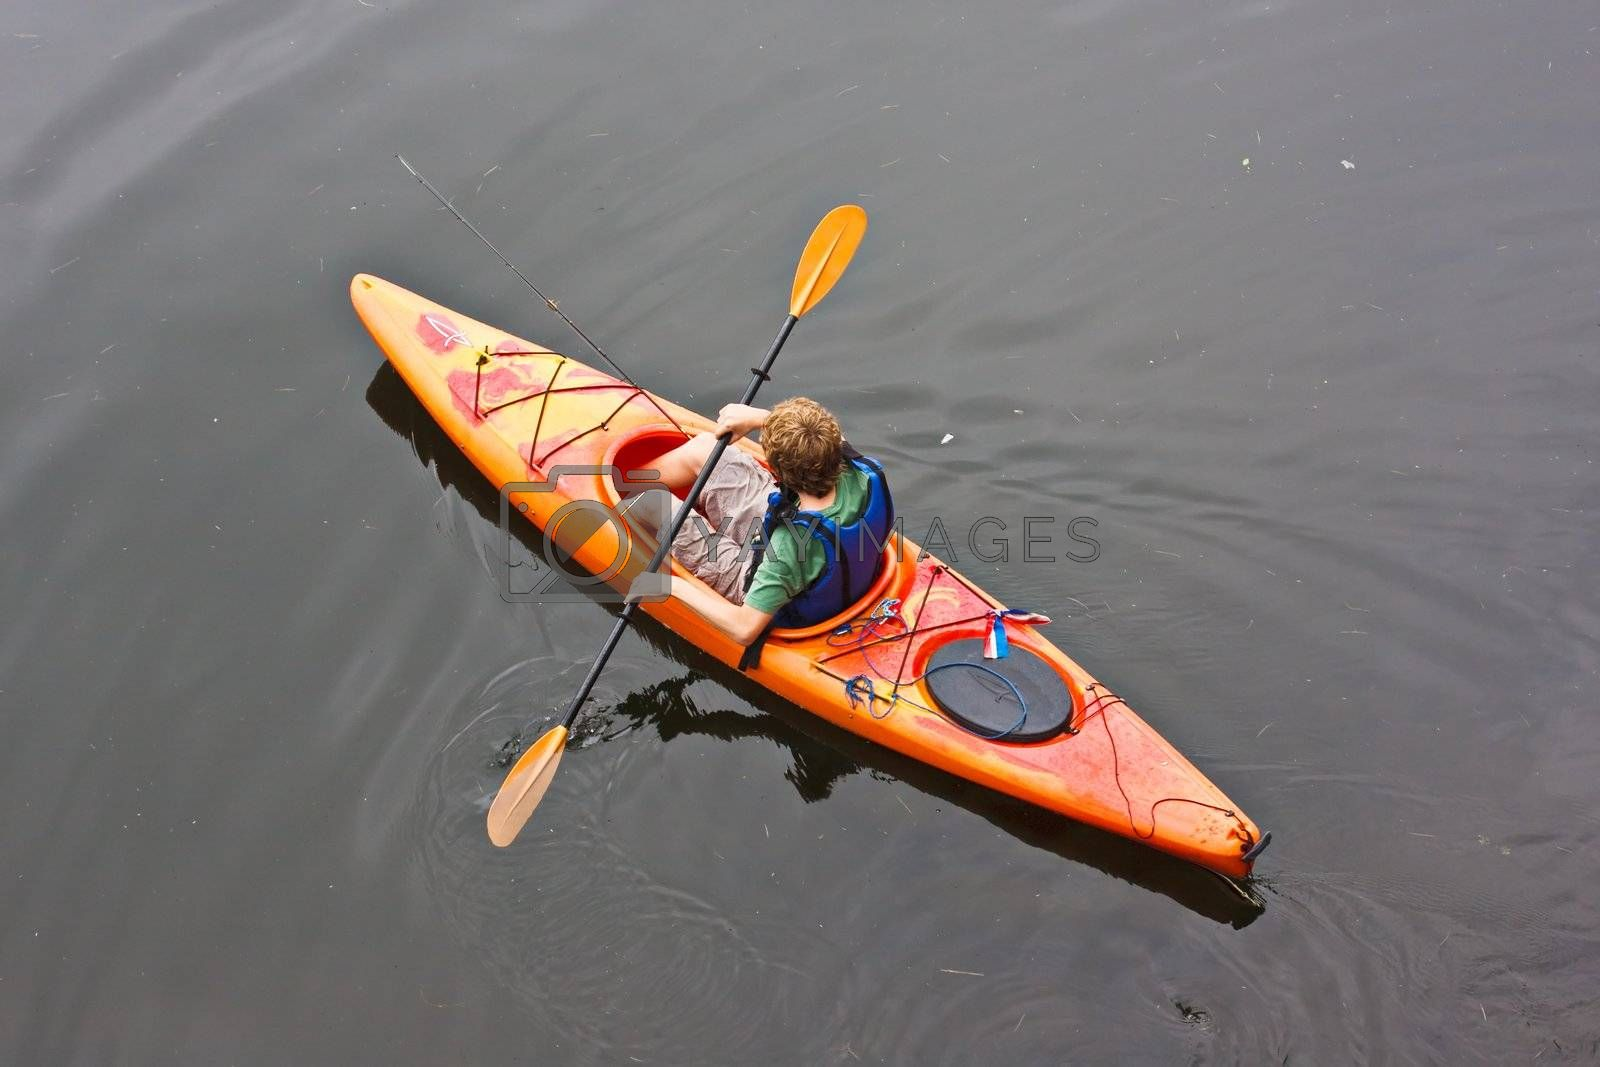 A teenage boy paddling a kayak on a lake. There is a fishing pole in the kayak with him.